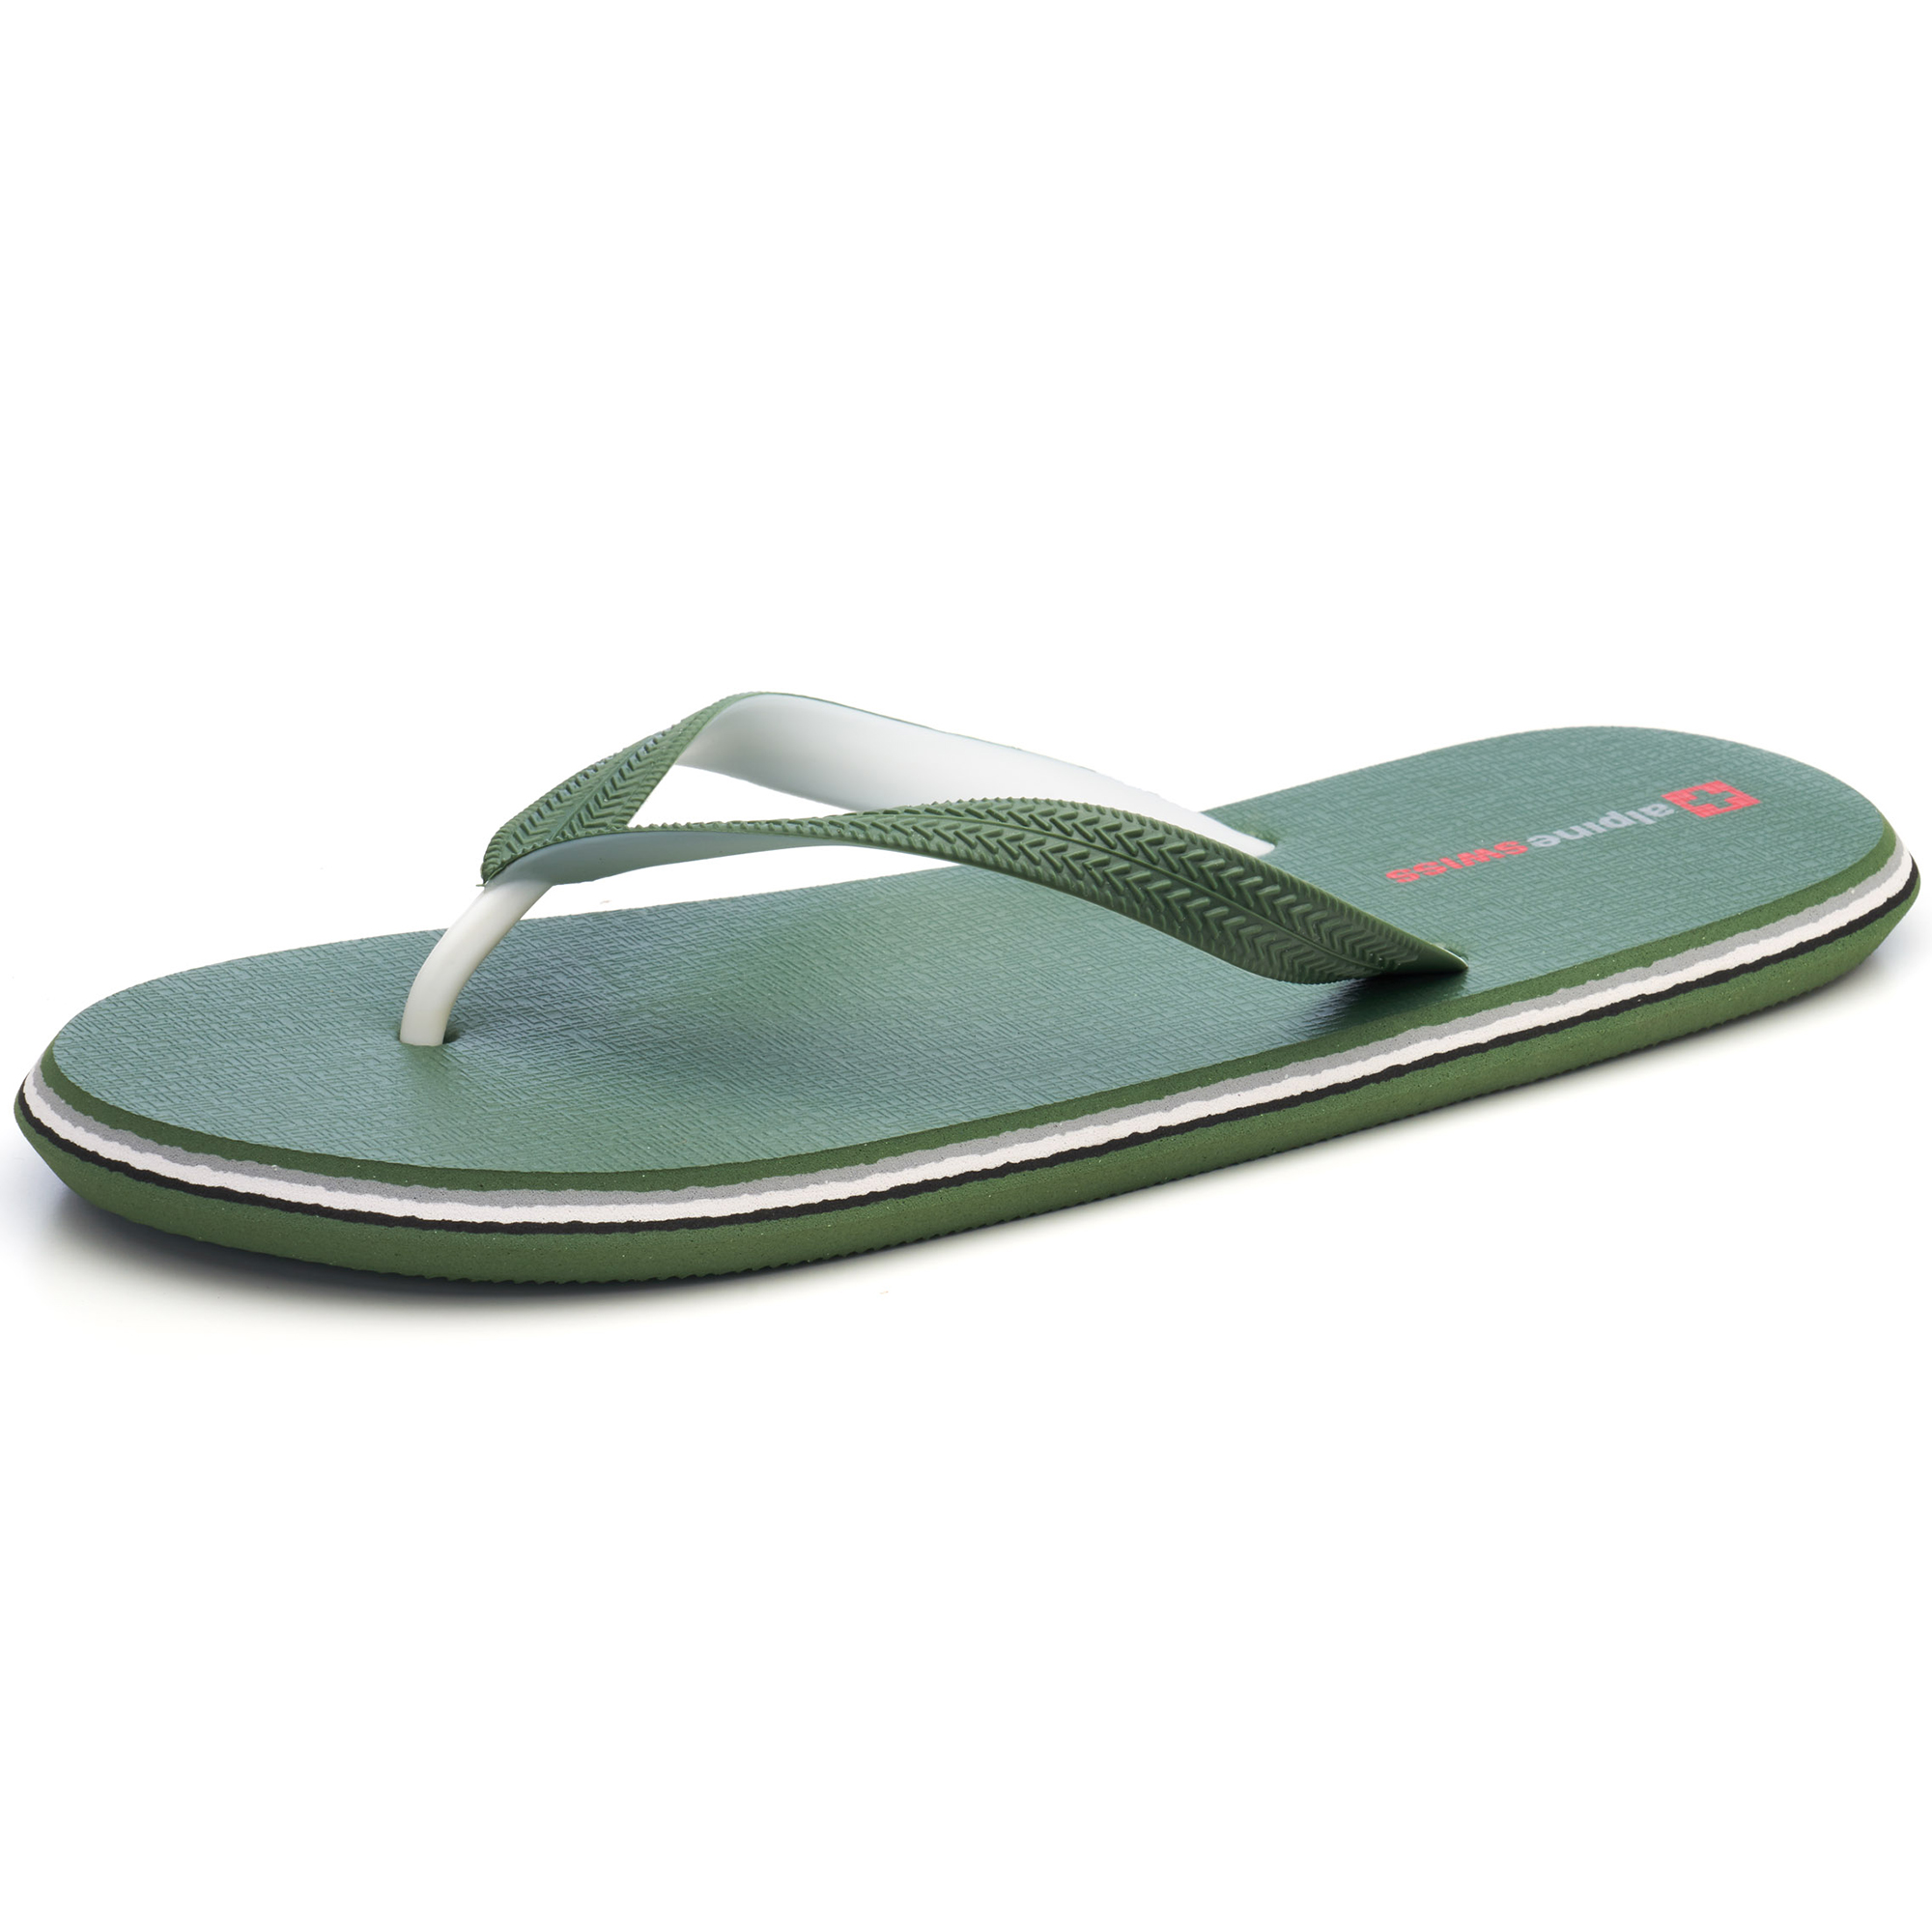 Alpine-Swiss-Mens-Flip-Flops-Beach-Sandals-Lightweight-EVA-Sole-Comfort-Thongs thumbnail 28